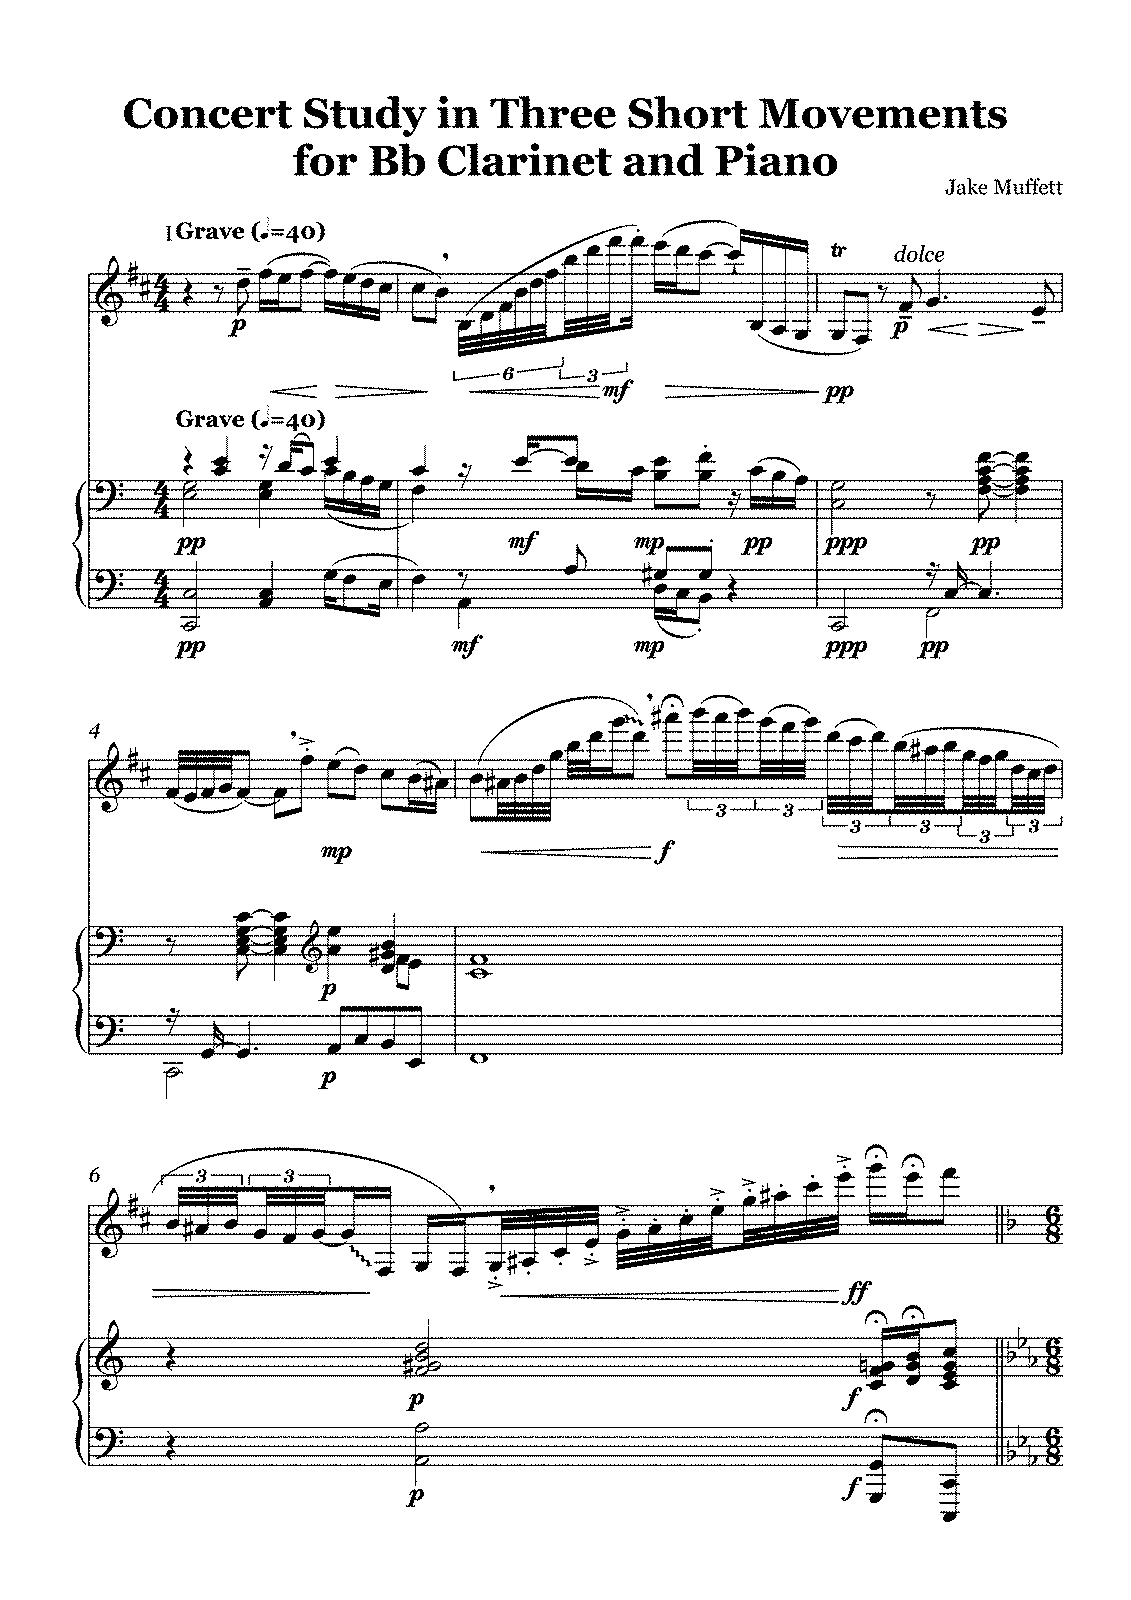 PMLP210478-Concert Study in Three Short Movements - Muffett.pdf